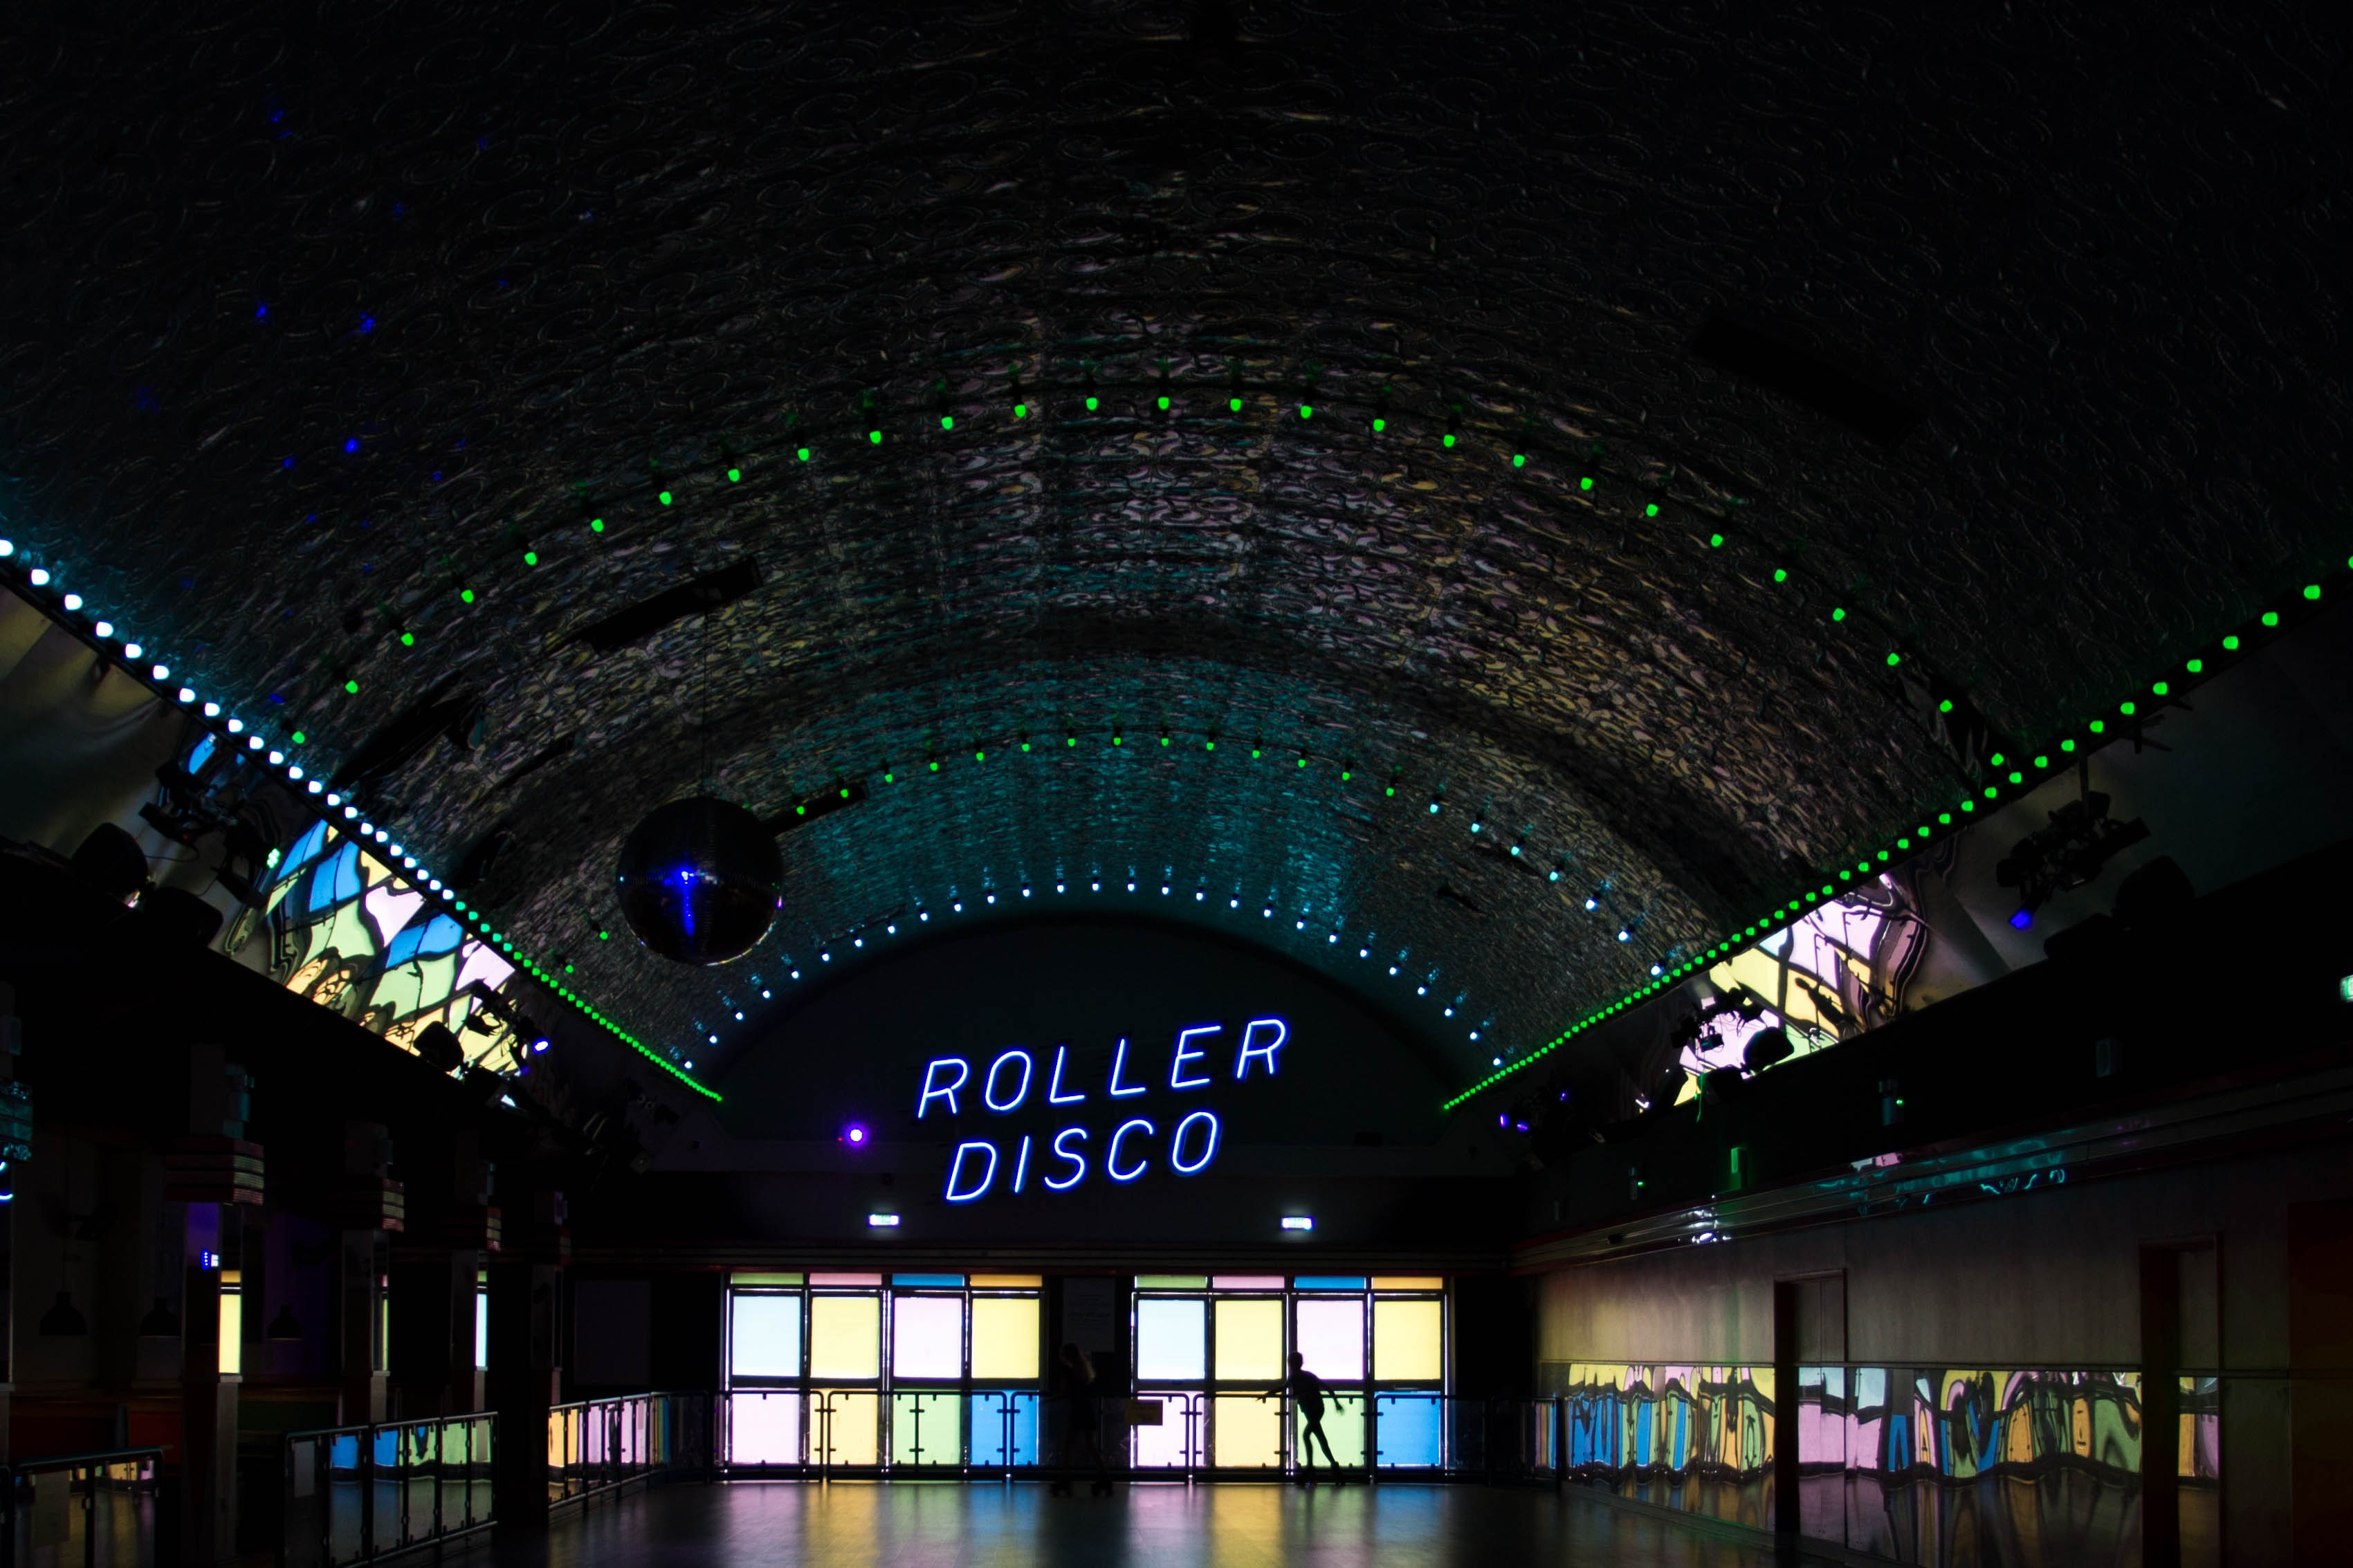 Roller Disco LED sign